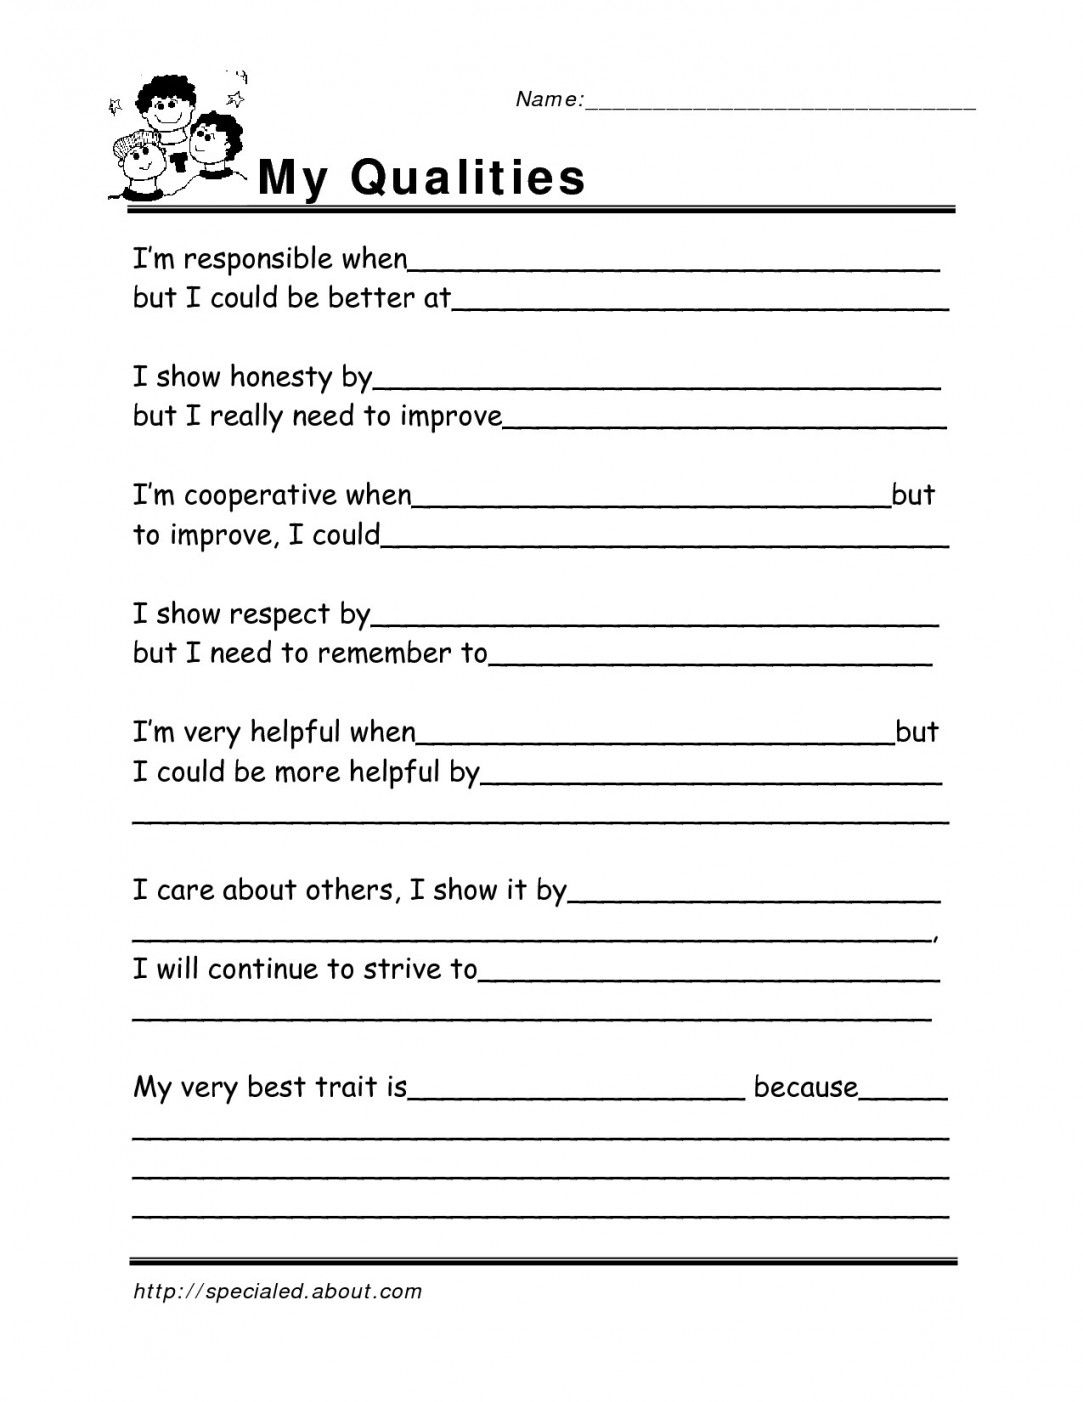 Free Printable Life Skills Worksheets | Lostranquillos - Free | Free Printable Life Skills Worksheets For Adults